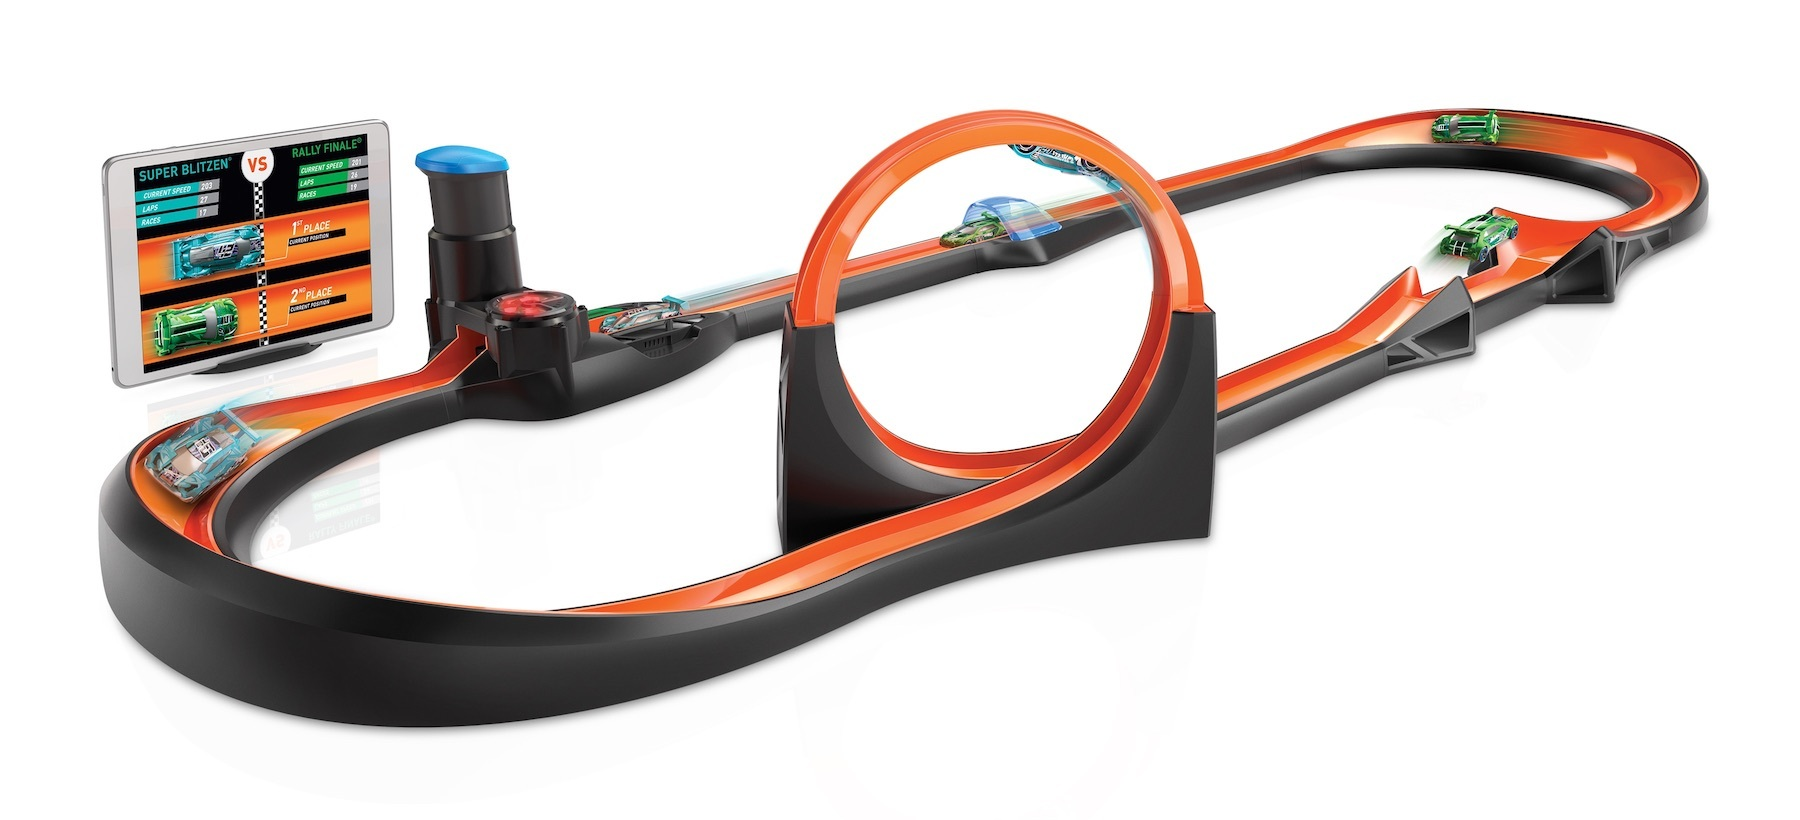 Hot_Wheels_id_Smart_Track_Kit_GFP20_3